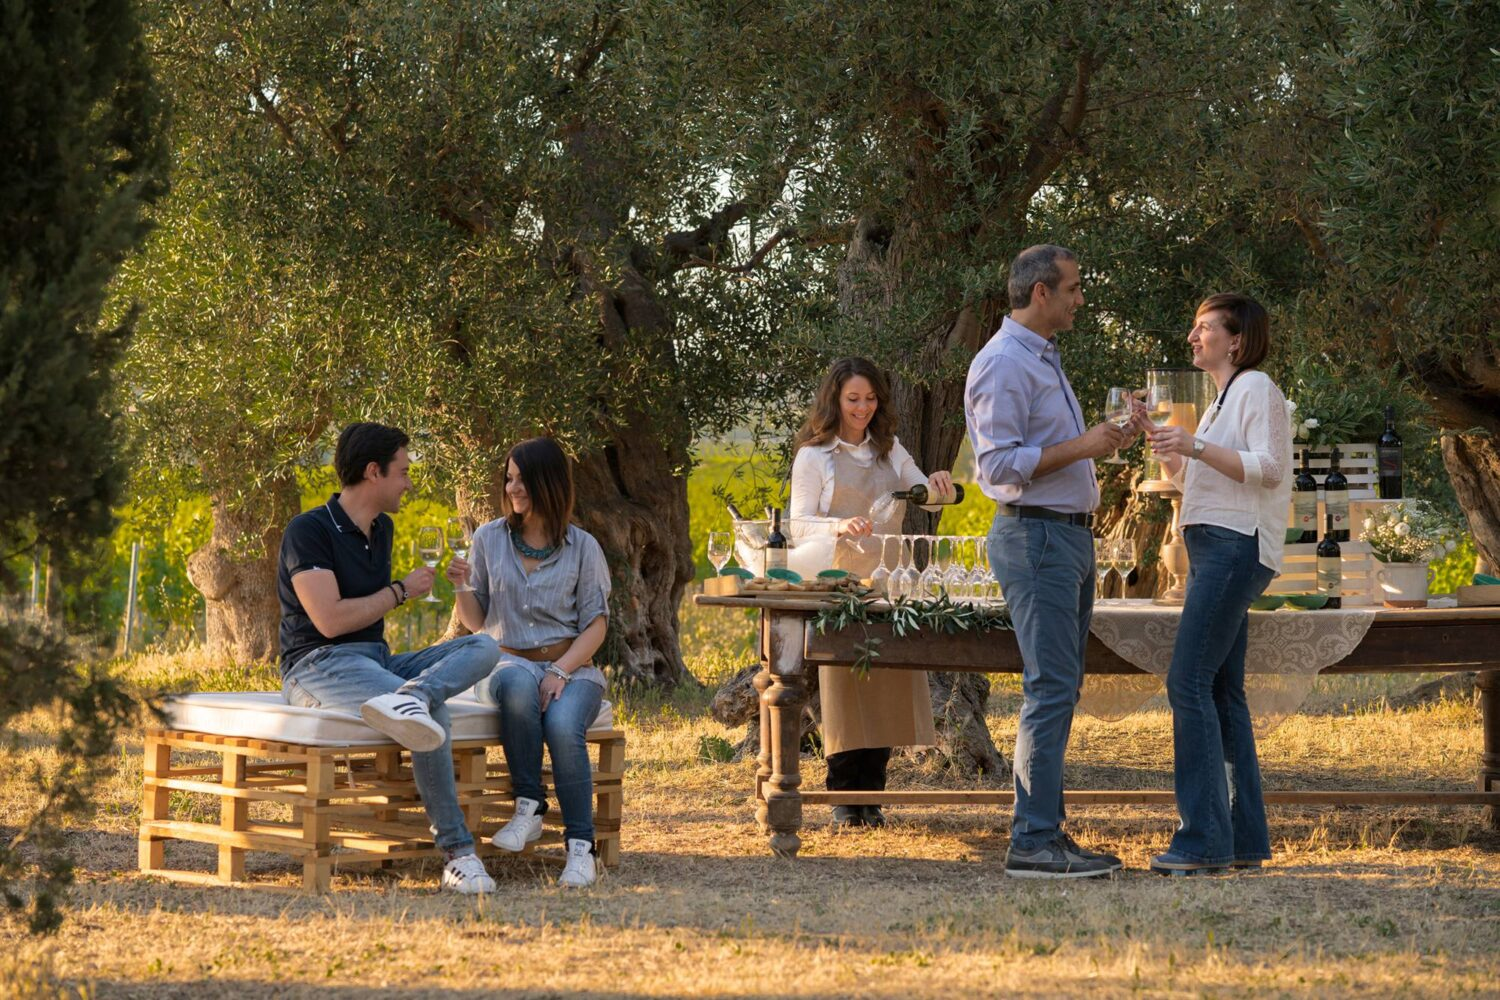 Tasting in olive grove trees